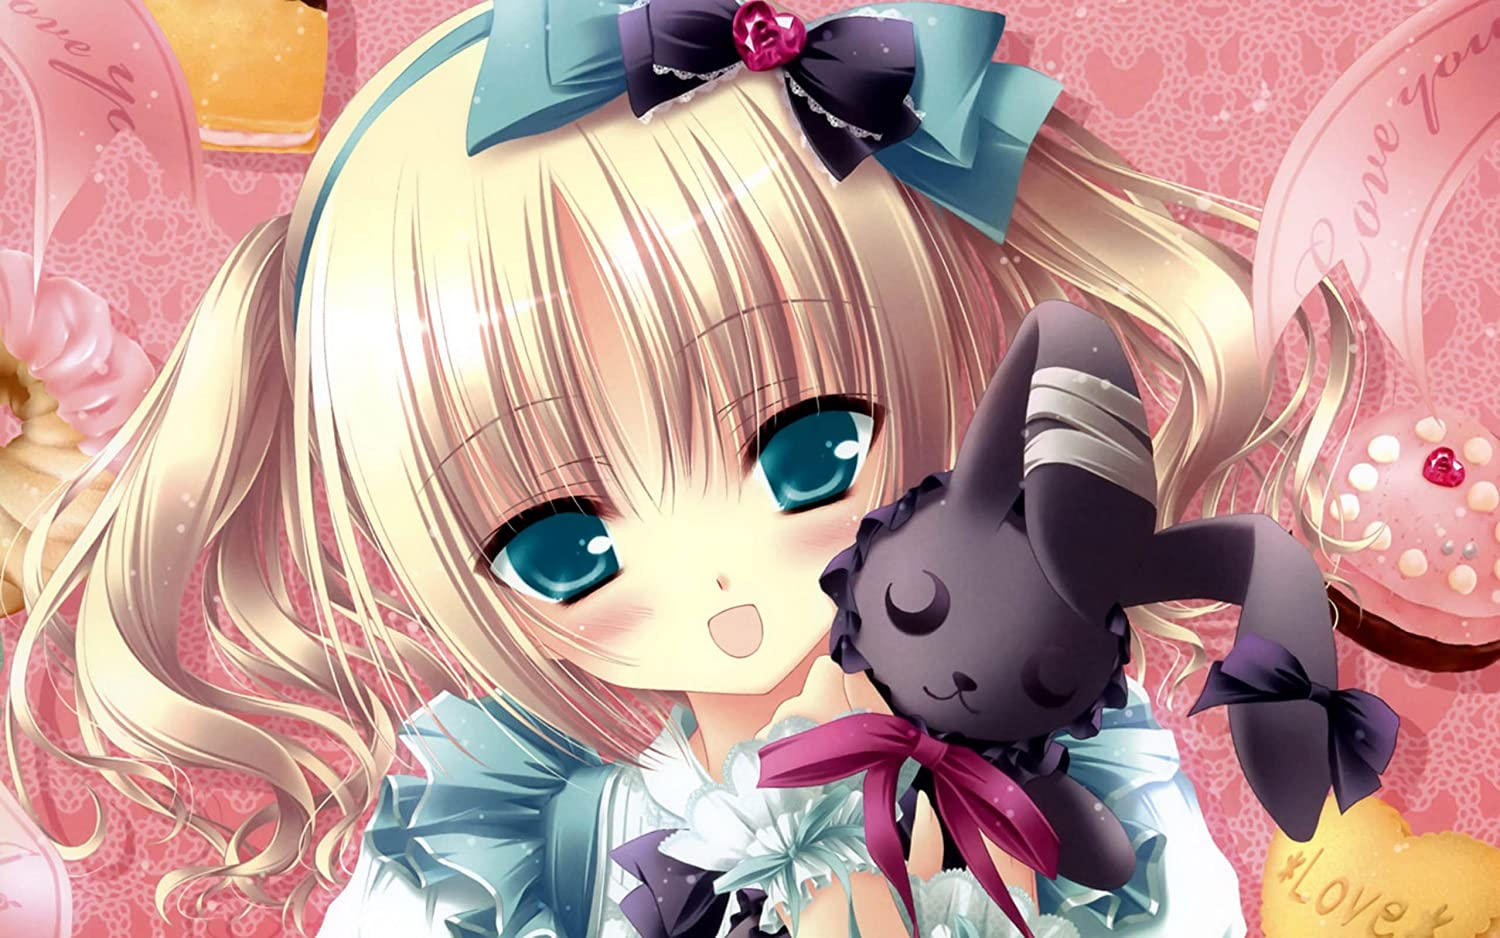 Athah Designs Anime Short Hair Girl Blonde Blue Eyes Cute Doll 13 19 Inches Wall Poster Matte Finish Amazon In Home Kitchen